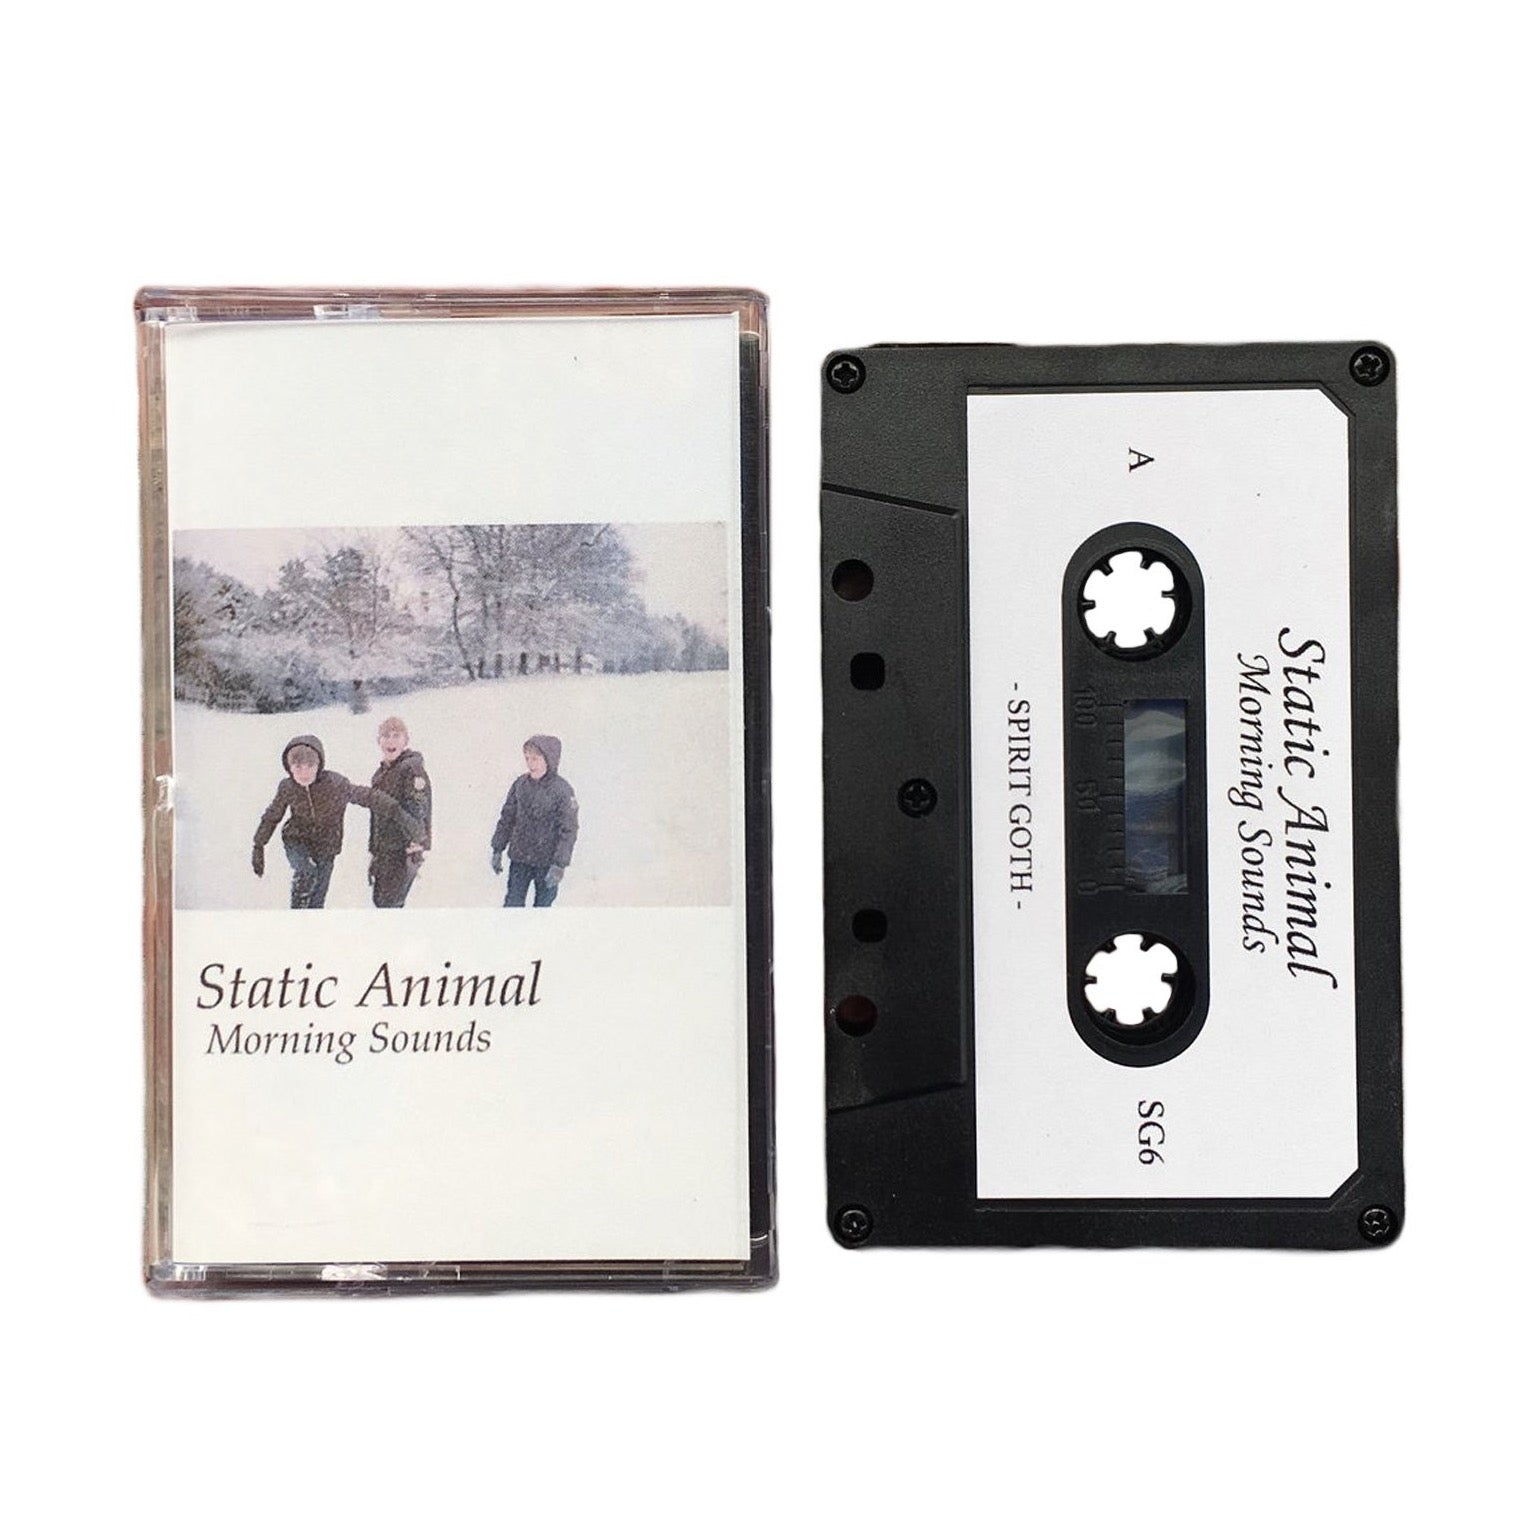 SG6: Static Animal - Morning Sounds